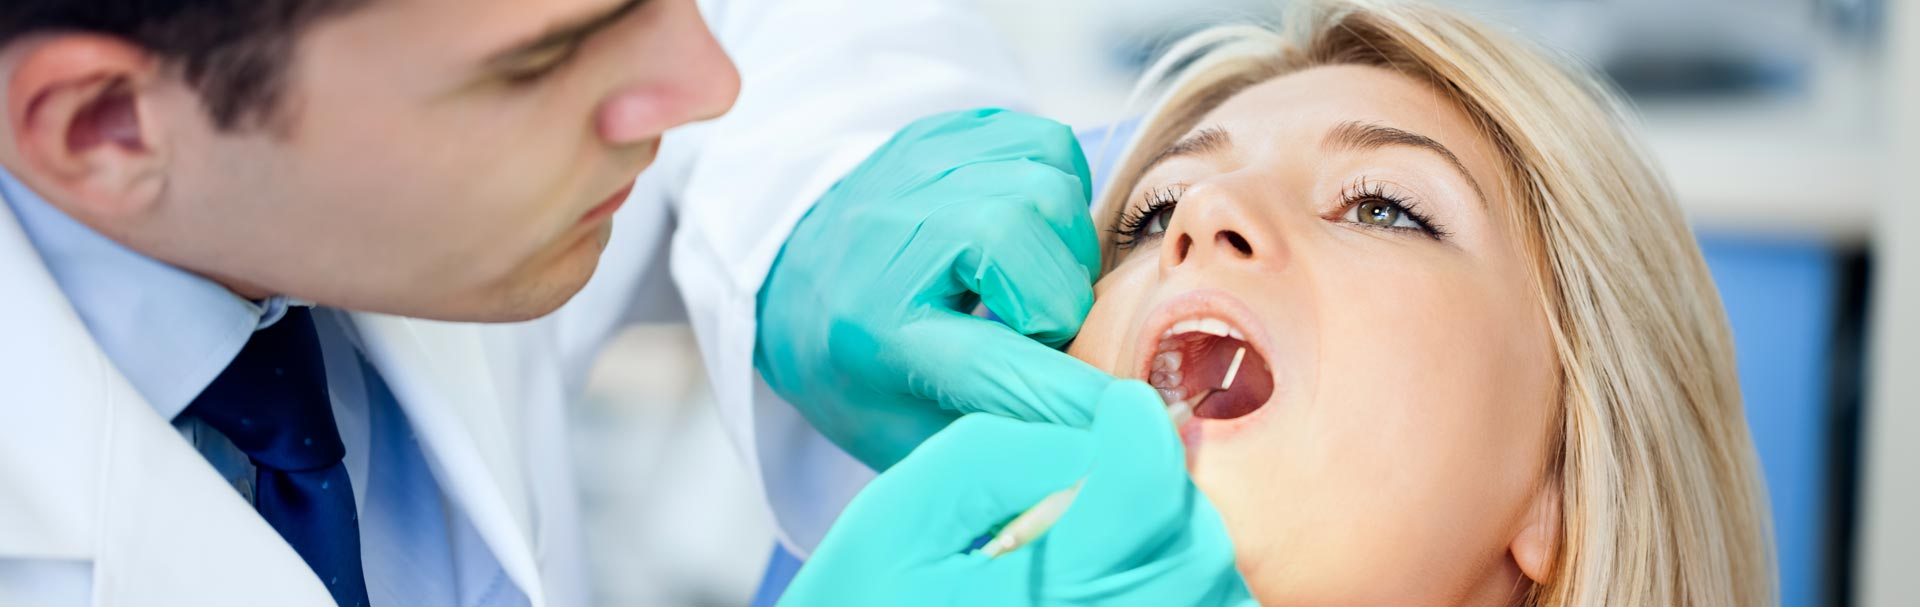 Dentist examining patient mouth for oral cancer